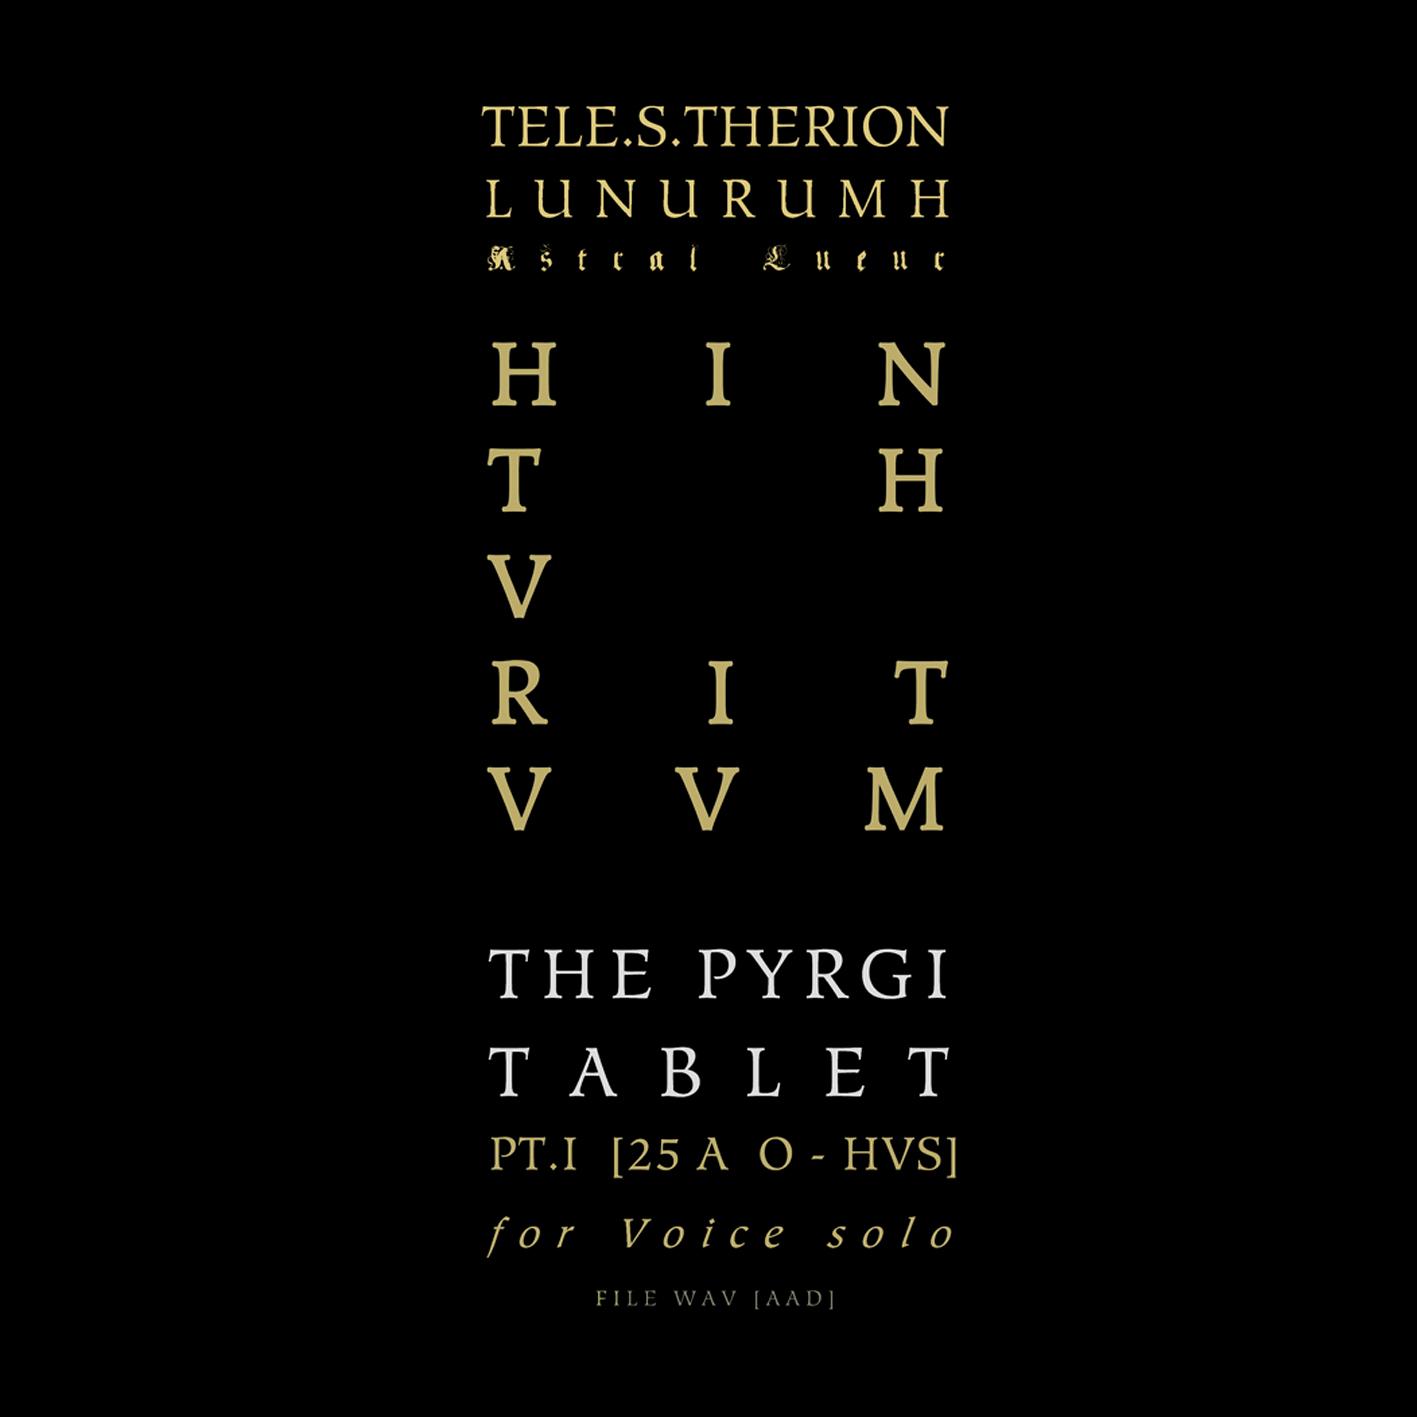 01-tele-s-therion-the-pyrgi-tablet-pt-1-25-a-o-hvs-for-voice-solo